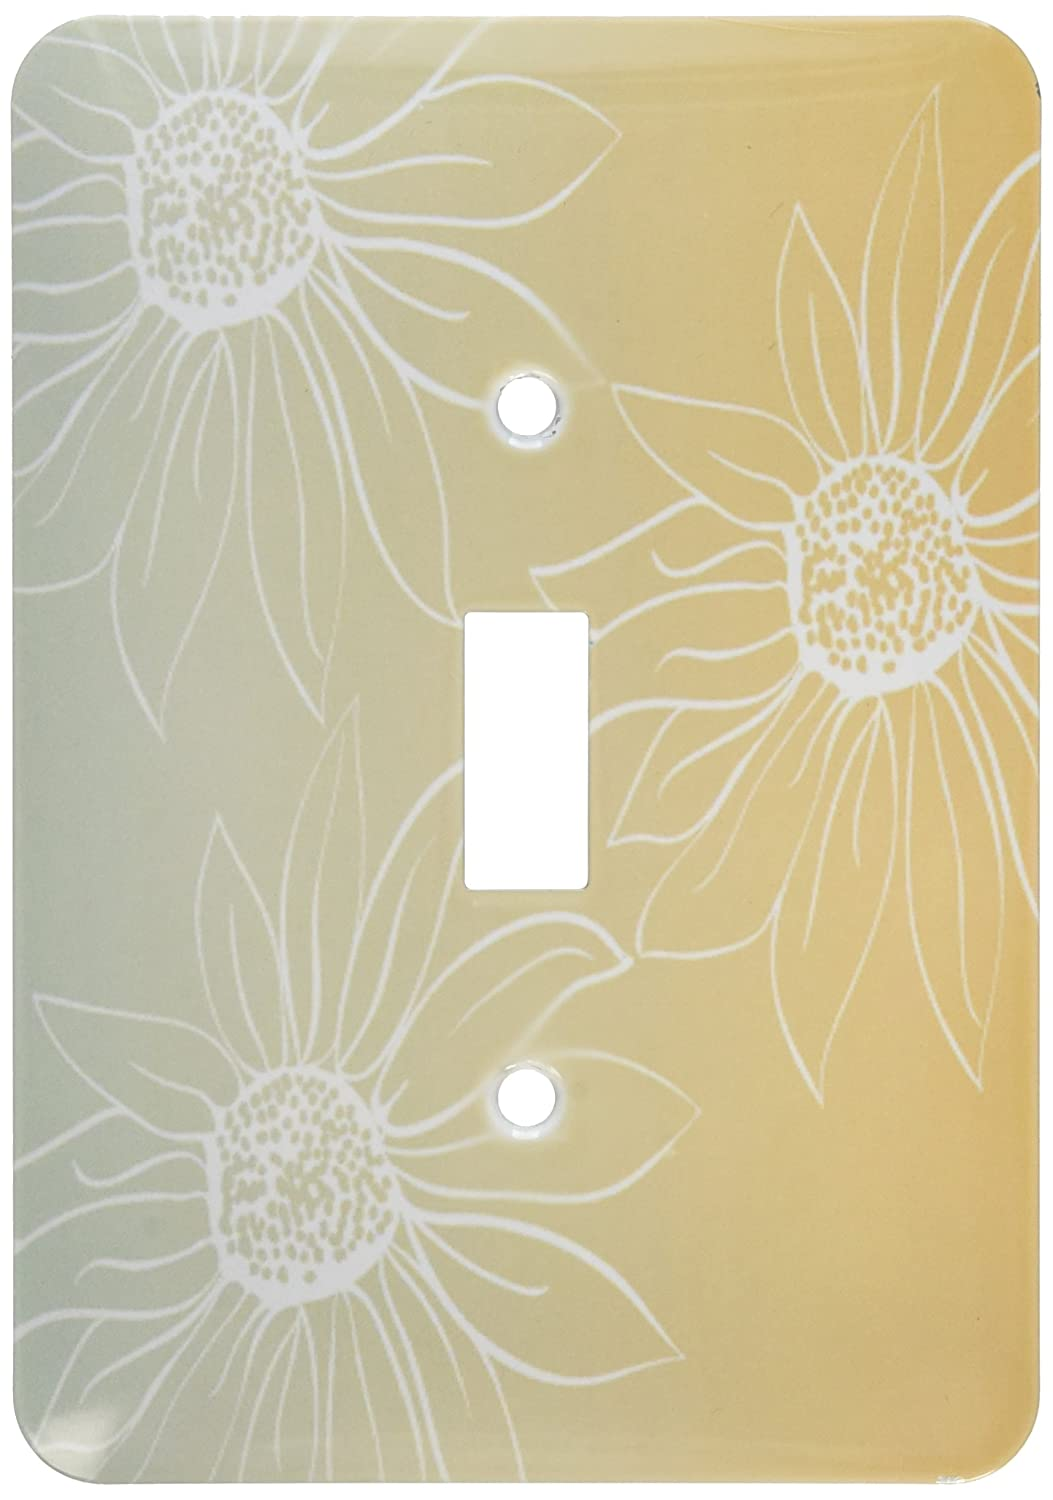 3dRose lsp/_213071/_1Peach And White Large Daisies Single Toggle Switch Multicolor